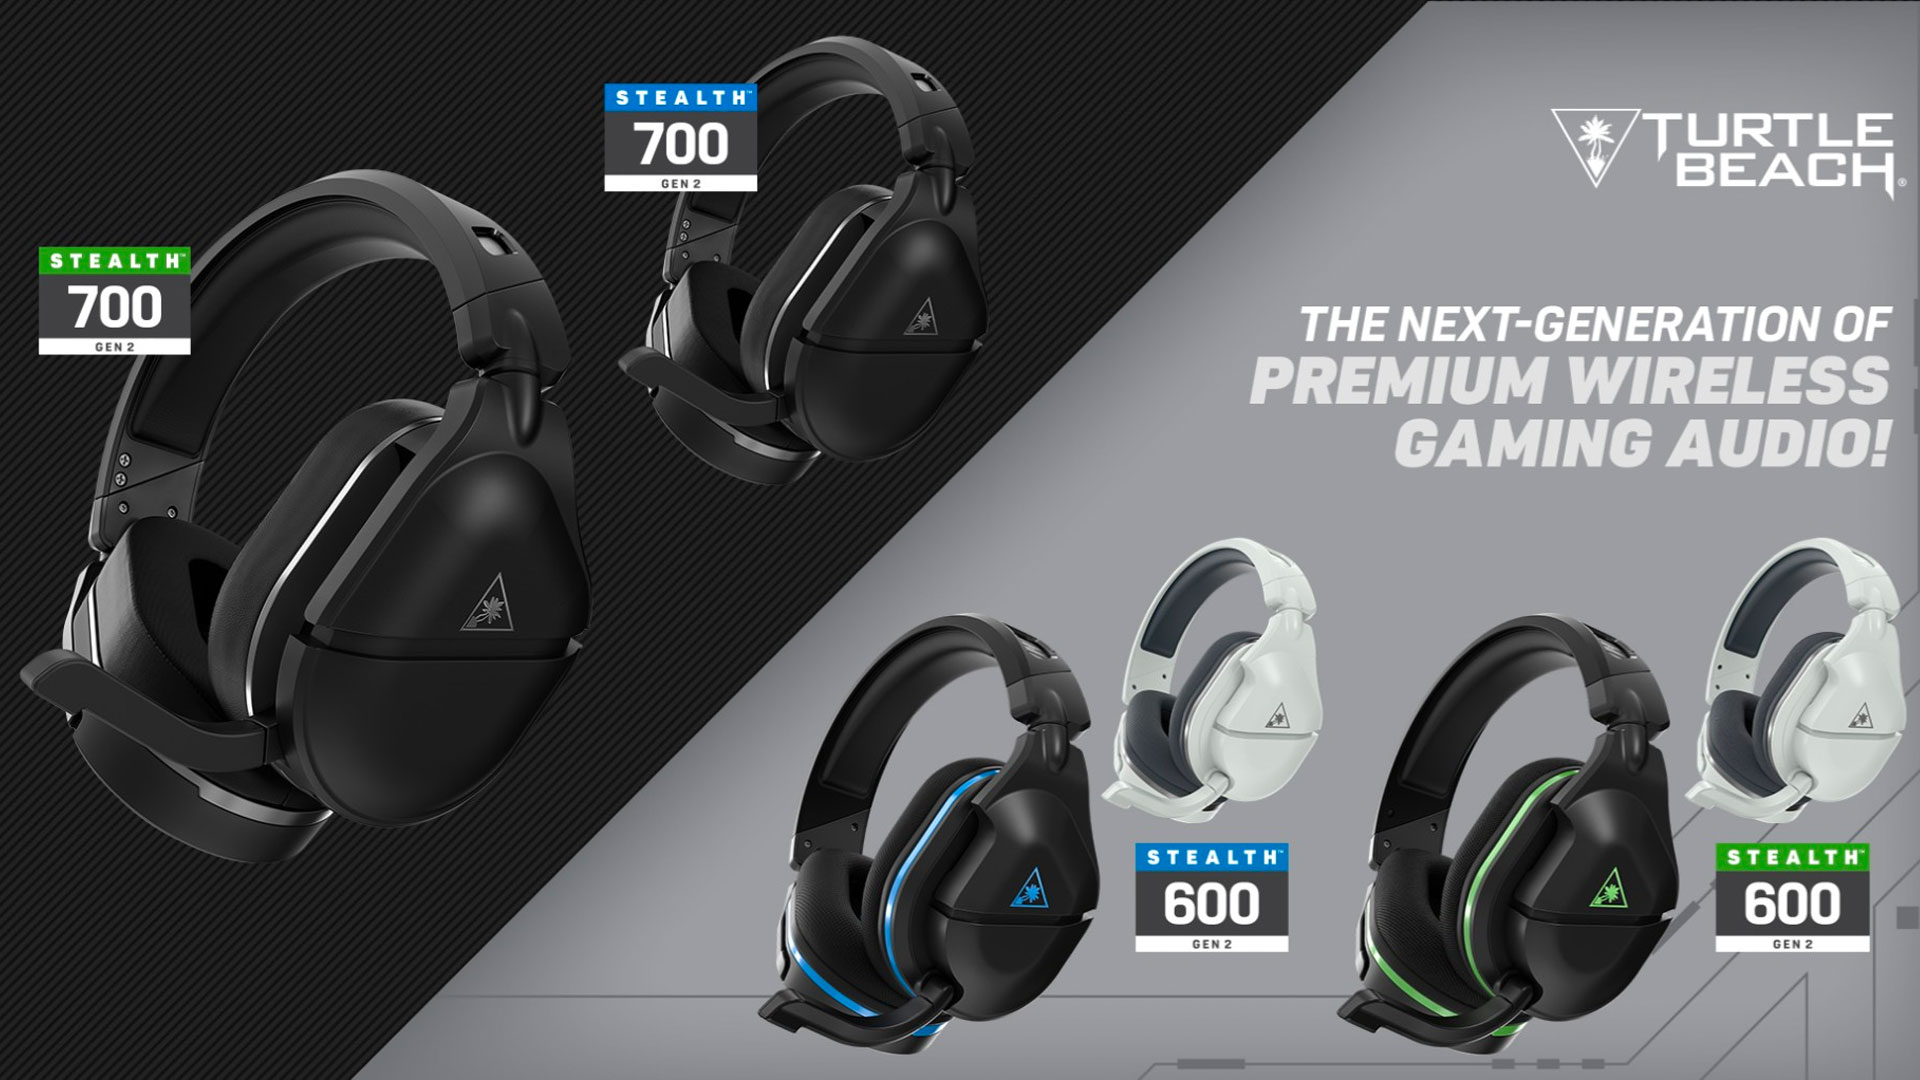 Turtle Beachlaunches Stealth 700 + 600 Gen 2 headsets - 9to5Toys